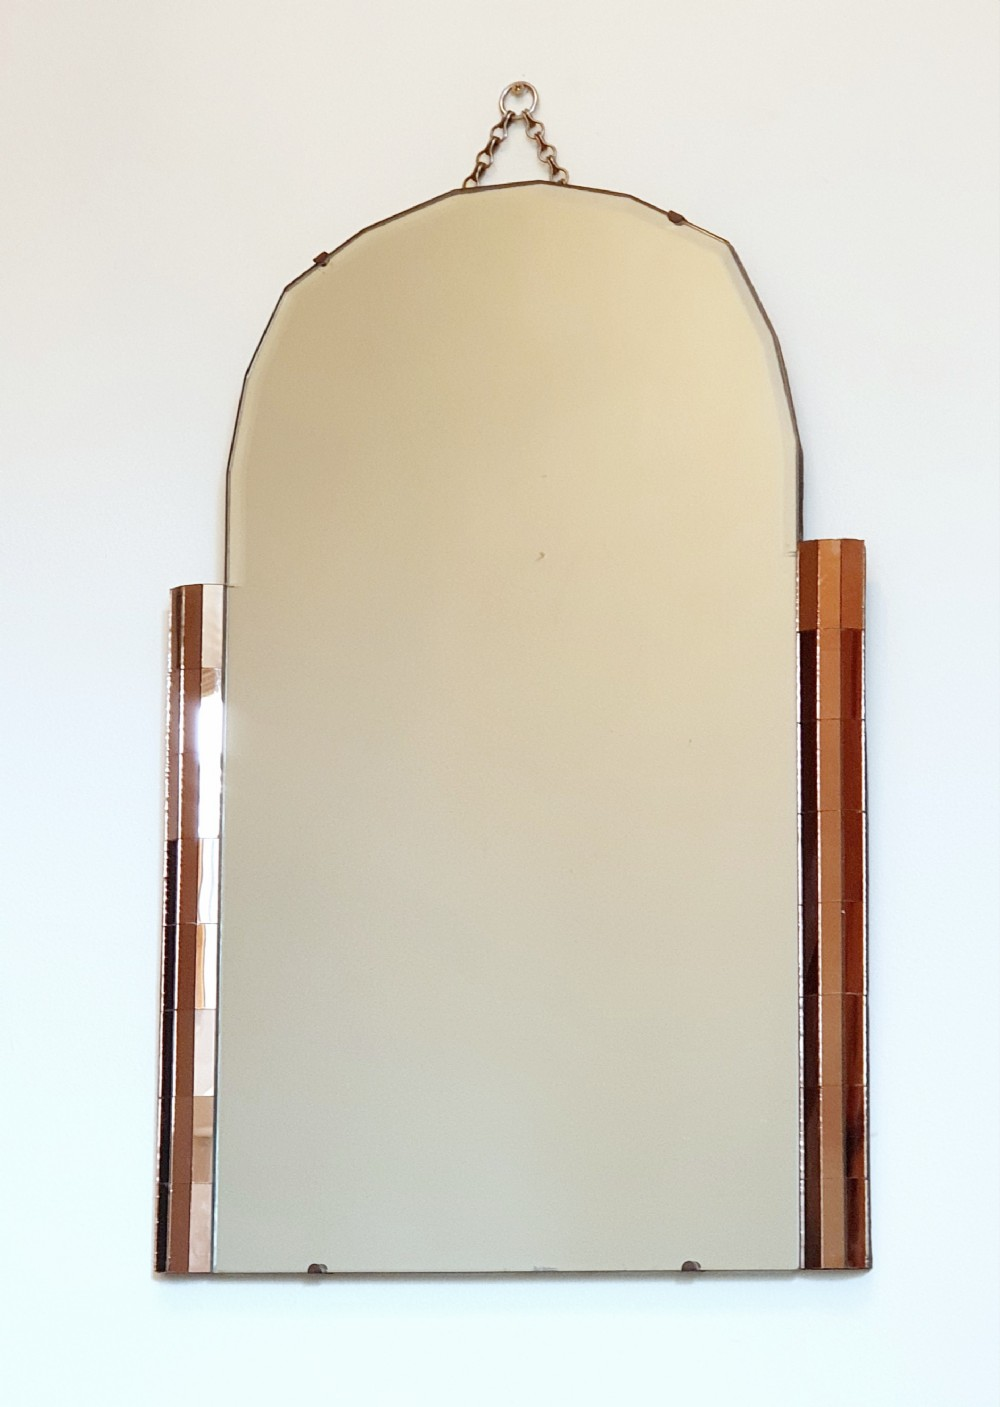 art deco mirror odeon design with amber panel detailing bevelled glass scalloped arch top original hanging chain wooden backing